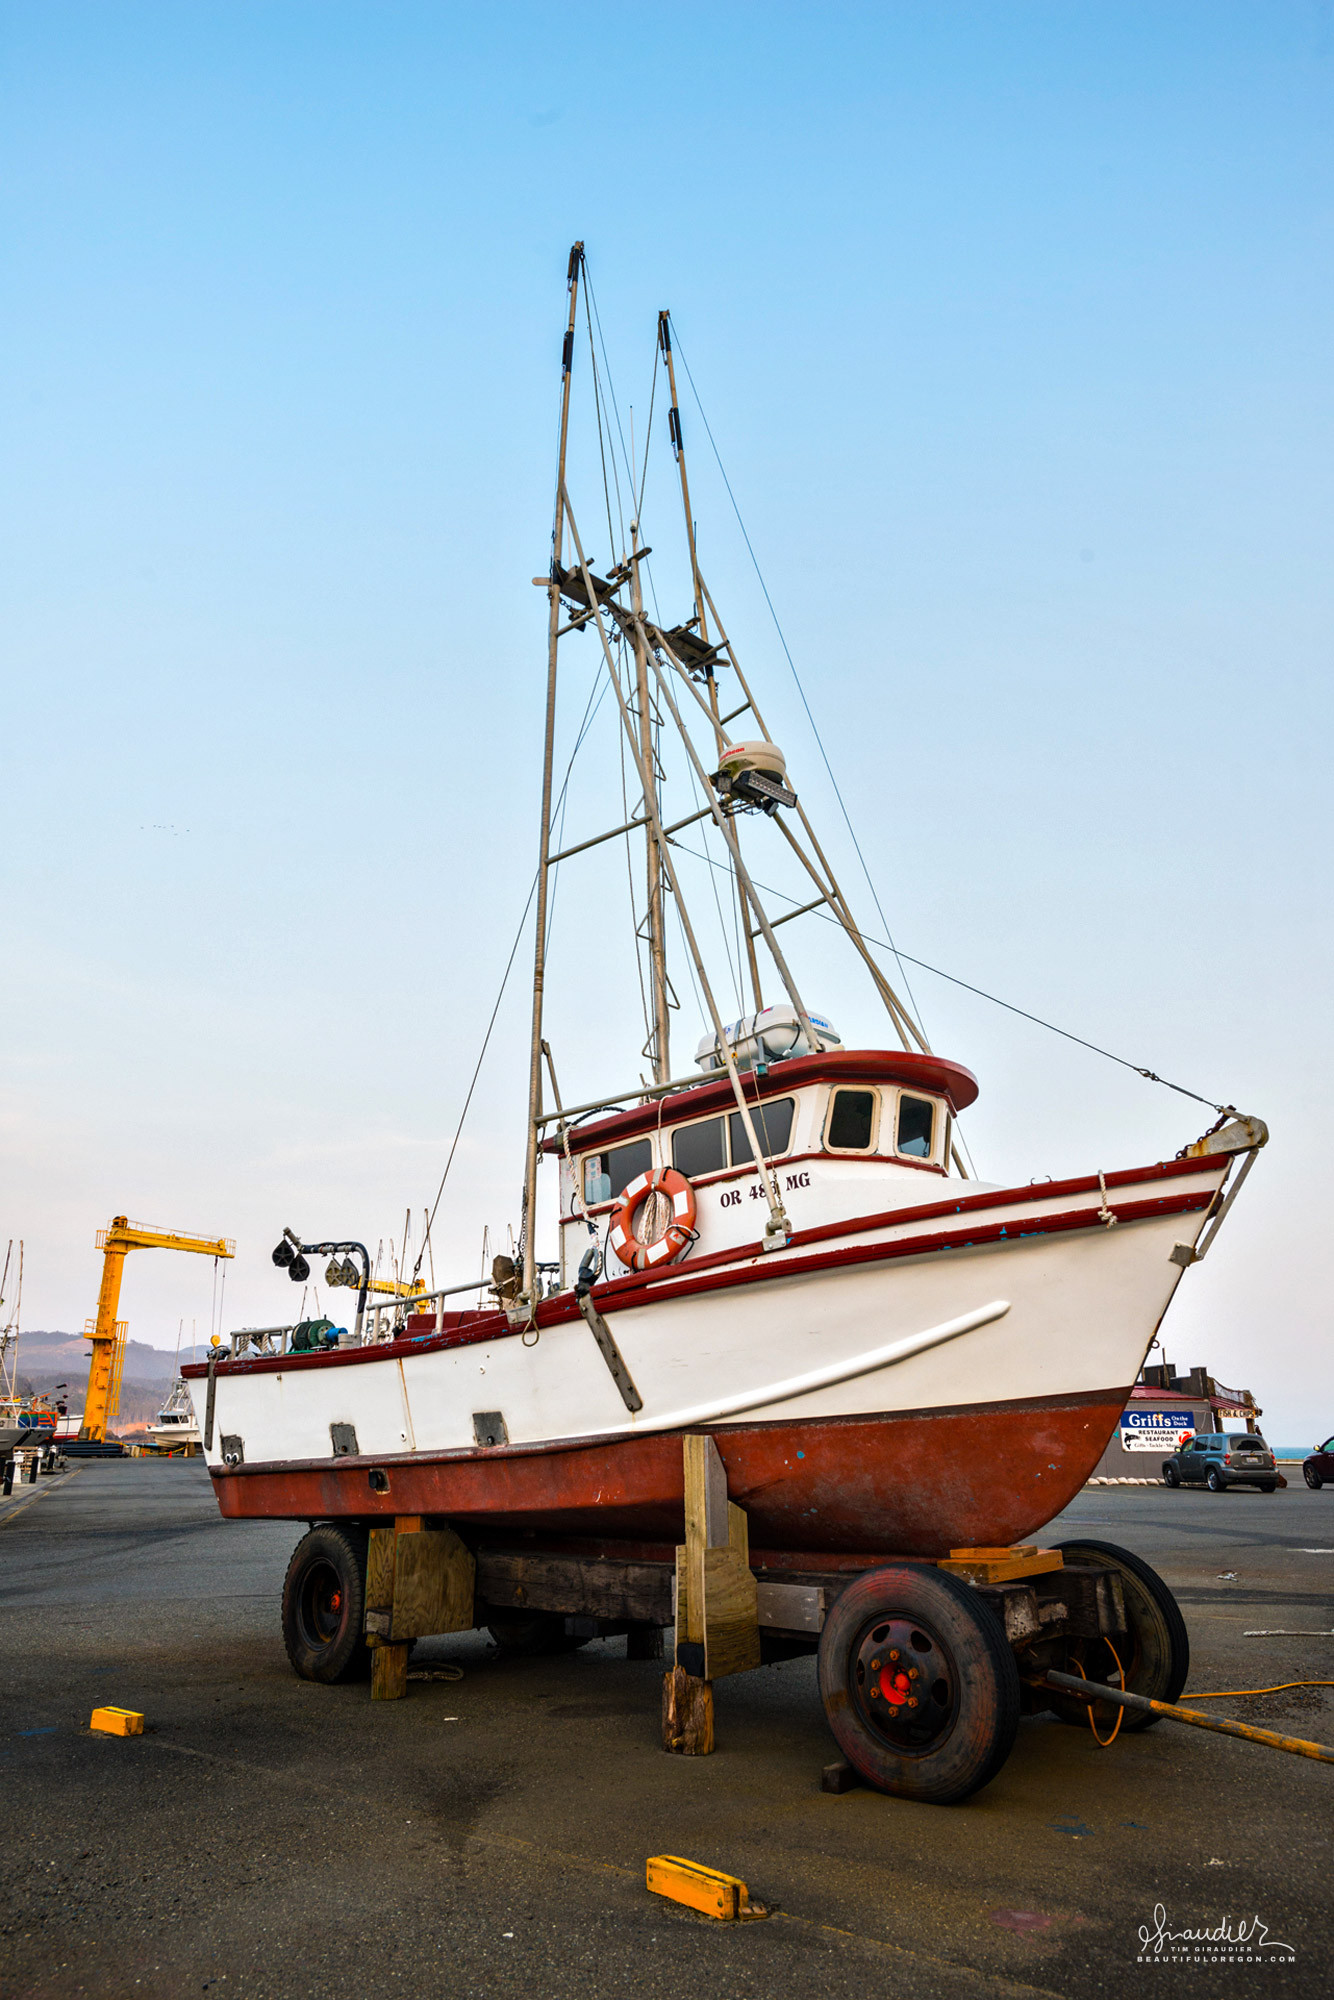 With Port Orford's harbor offering little protection from the weather, its fleet of commercial fishing boats, is stored on improvised carriages. Curry County, South Oregon Coast.